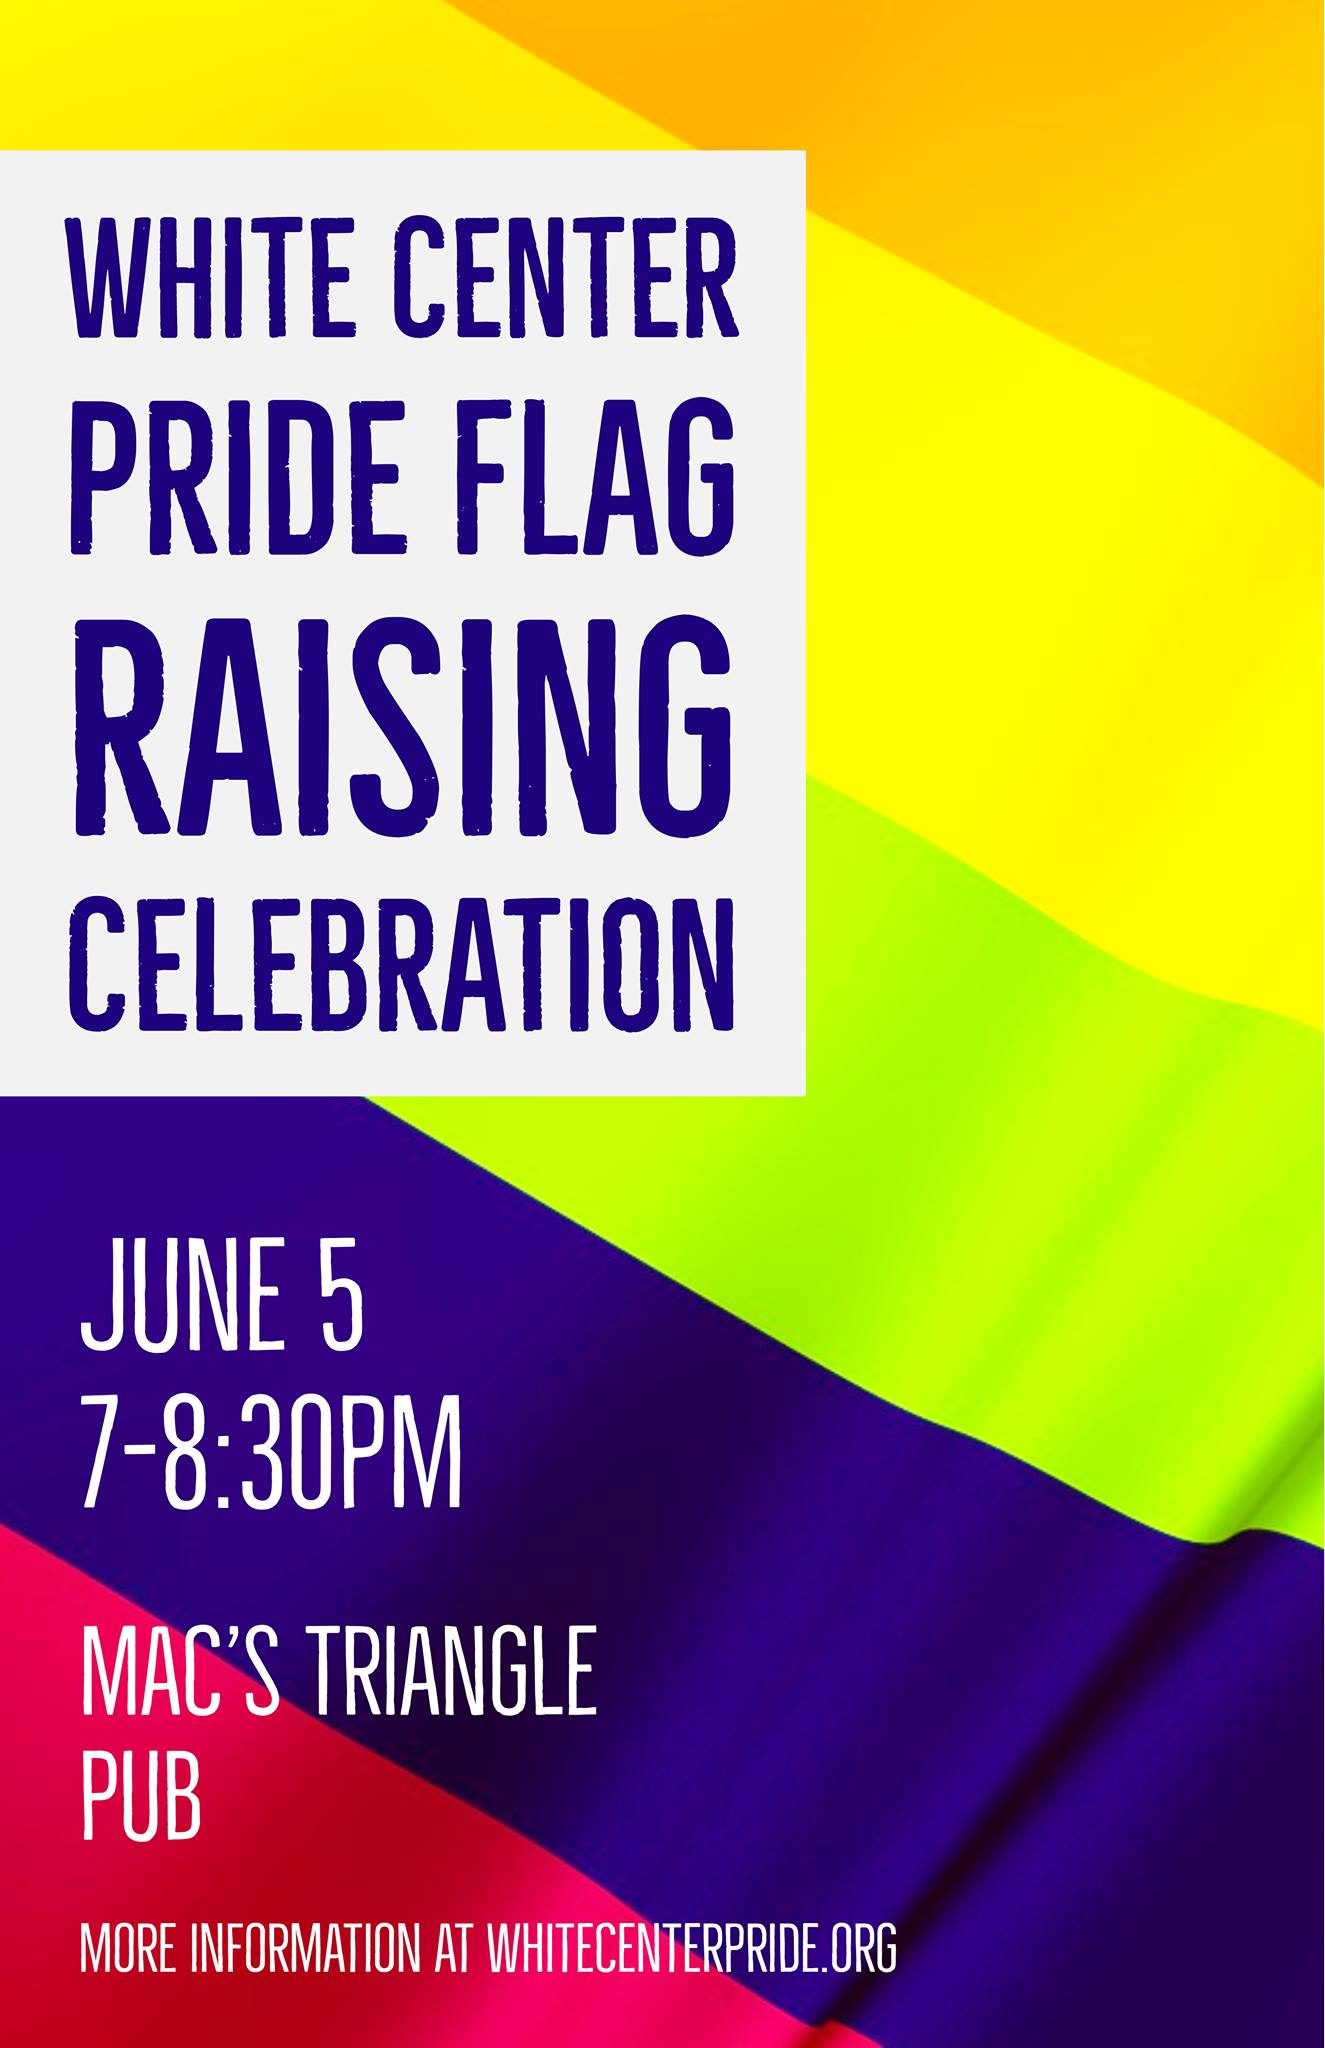 Come raise the flag! - Entertainment, speakers, and refreshments..then head to Southgate Roller Rink for Pride Skate!